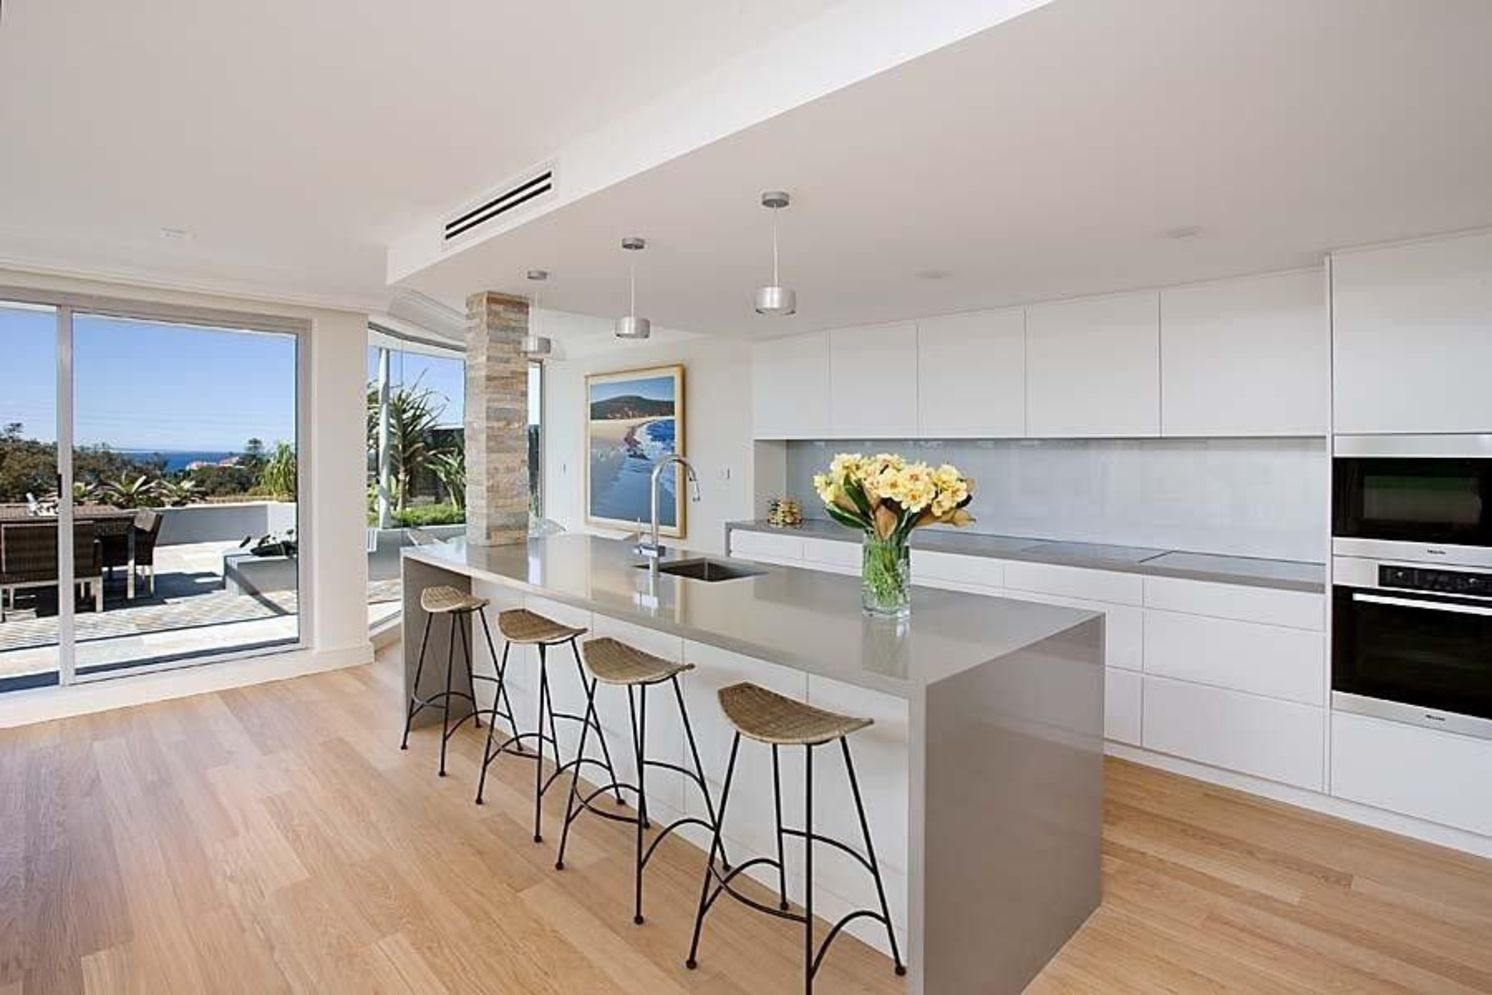 Classy kitchen styles in bold display maximizing concrete benchtop designs Image 4